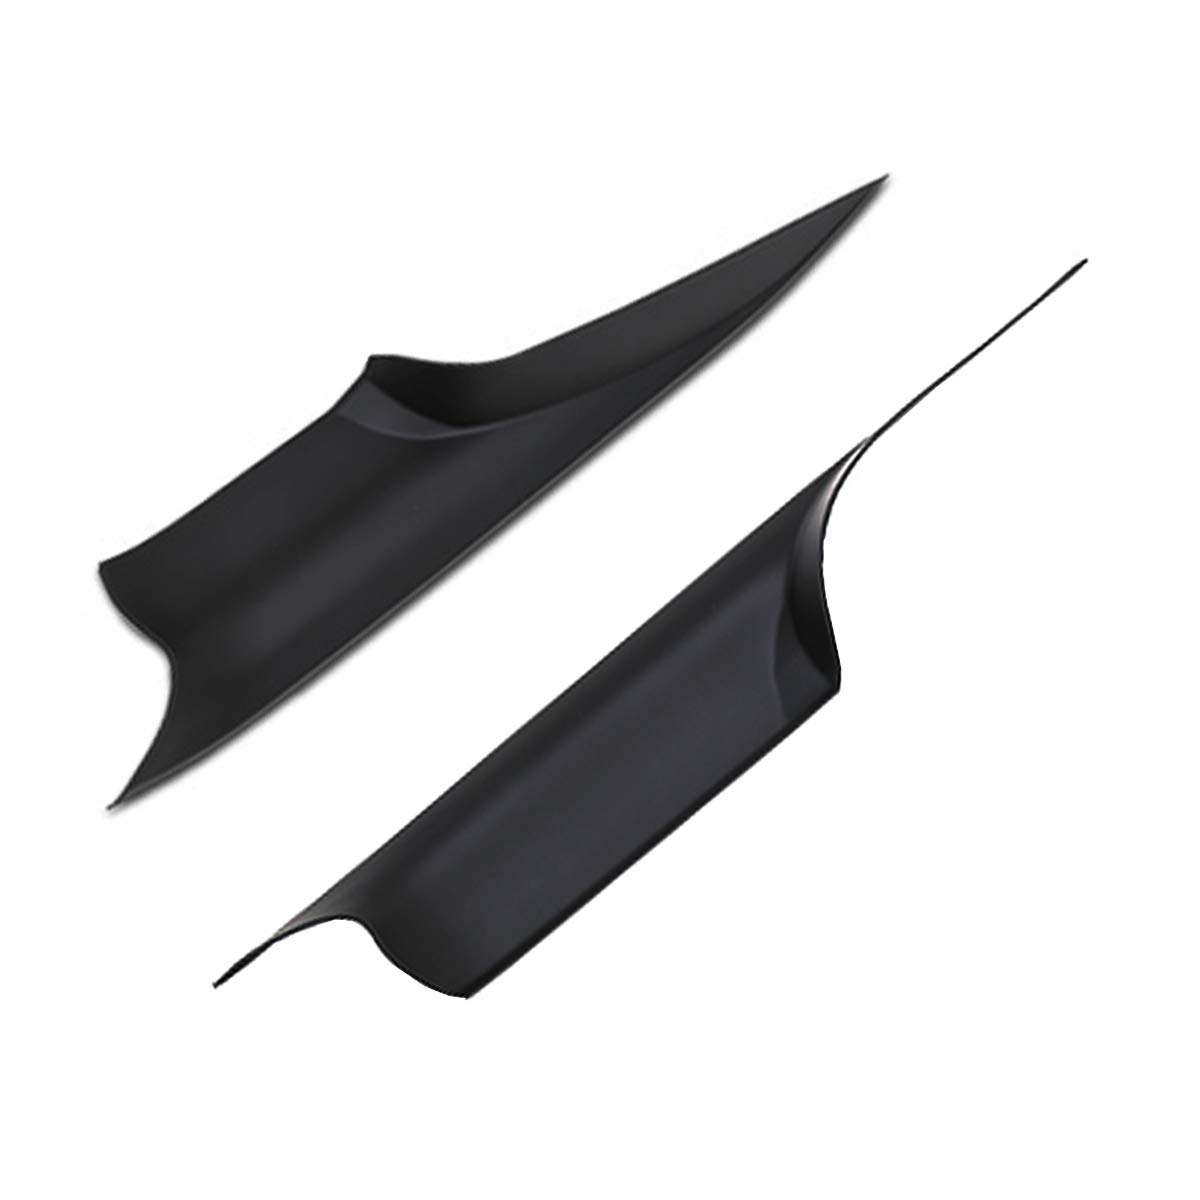 Moonlinks For BMW 7 Series Door Pull Handle Covers Right Front Interior Door Grab Handle Covers Trim(2 pieces,Fits 2008-2014 BMW 7 Series F01 F02) Left Front